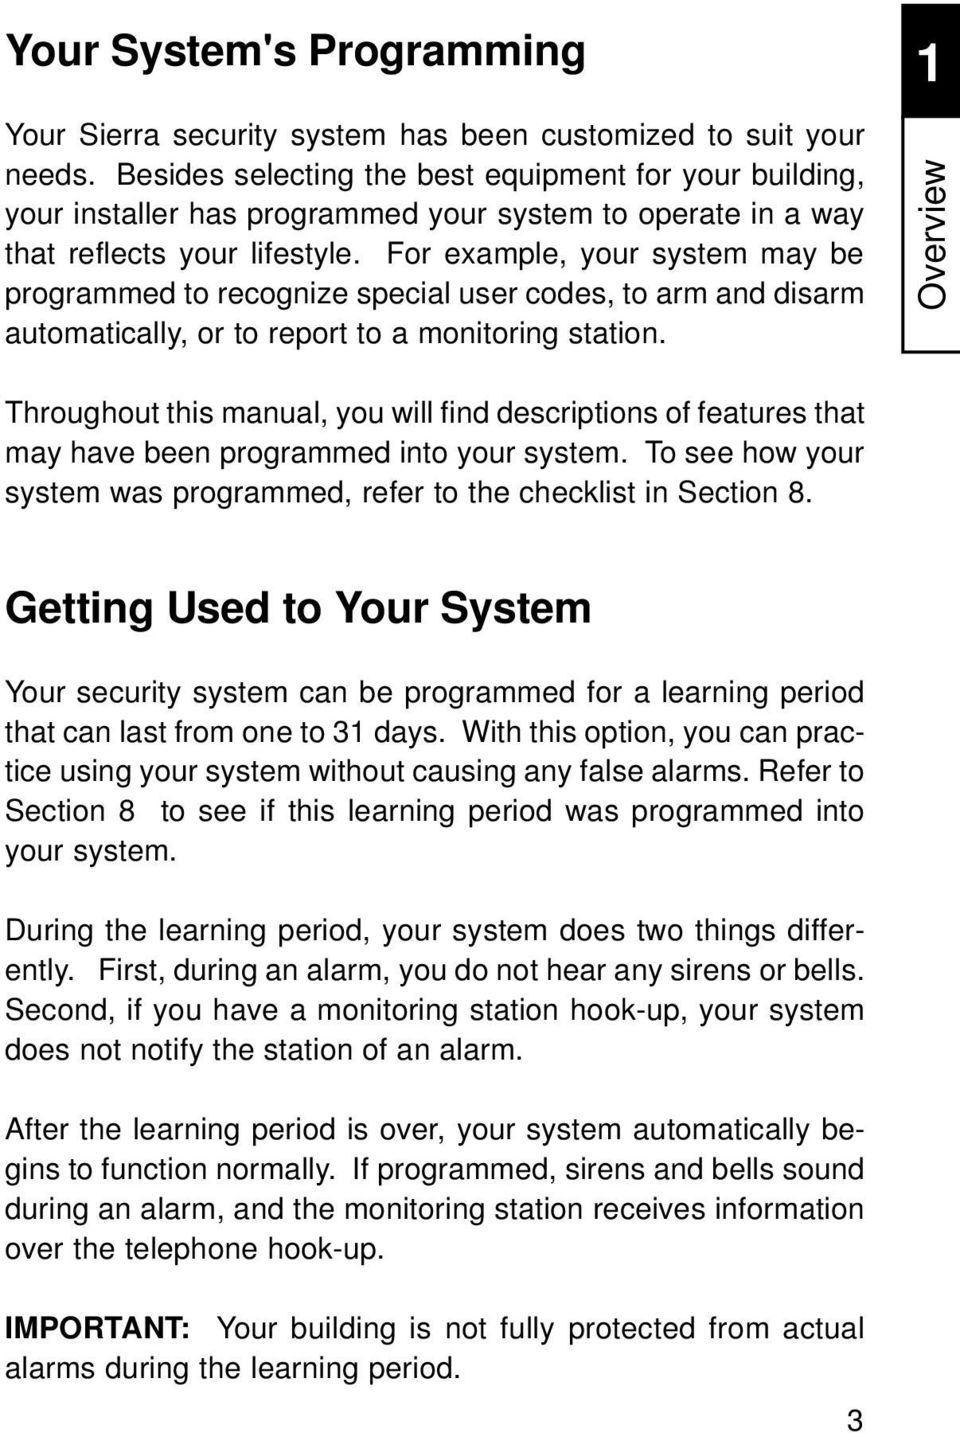 For example, your system may be programmed to recognize special user codes, to arm and disarm automatically, or to report to a monitoring station.